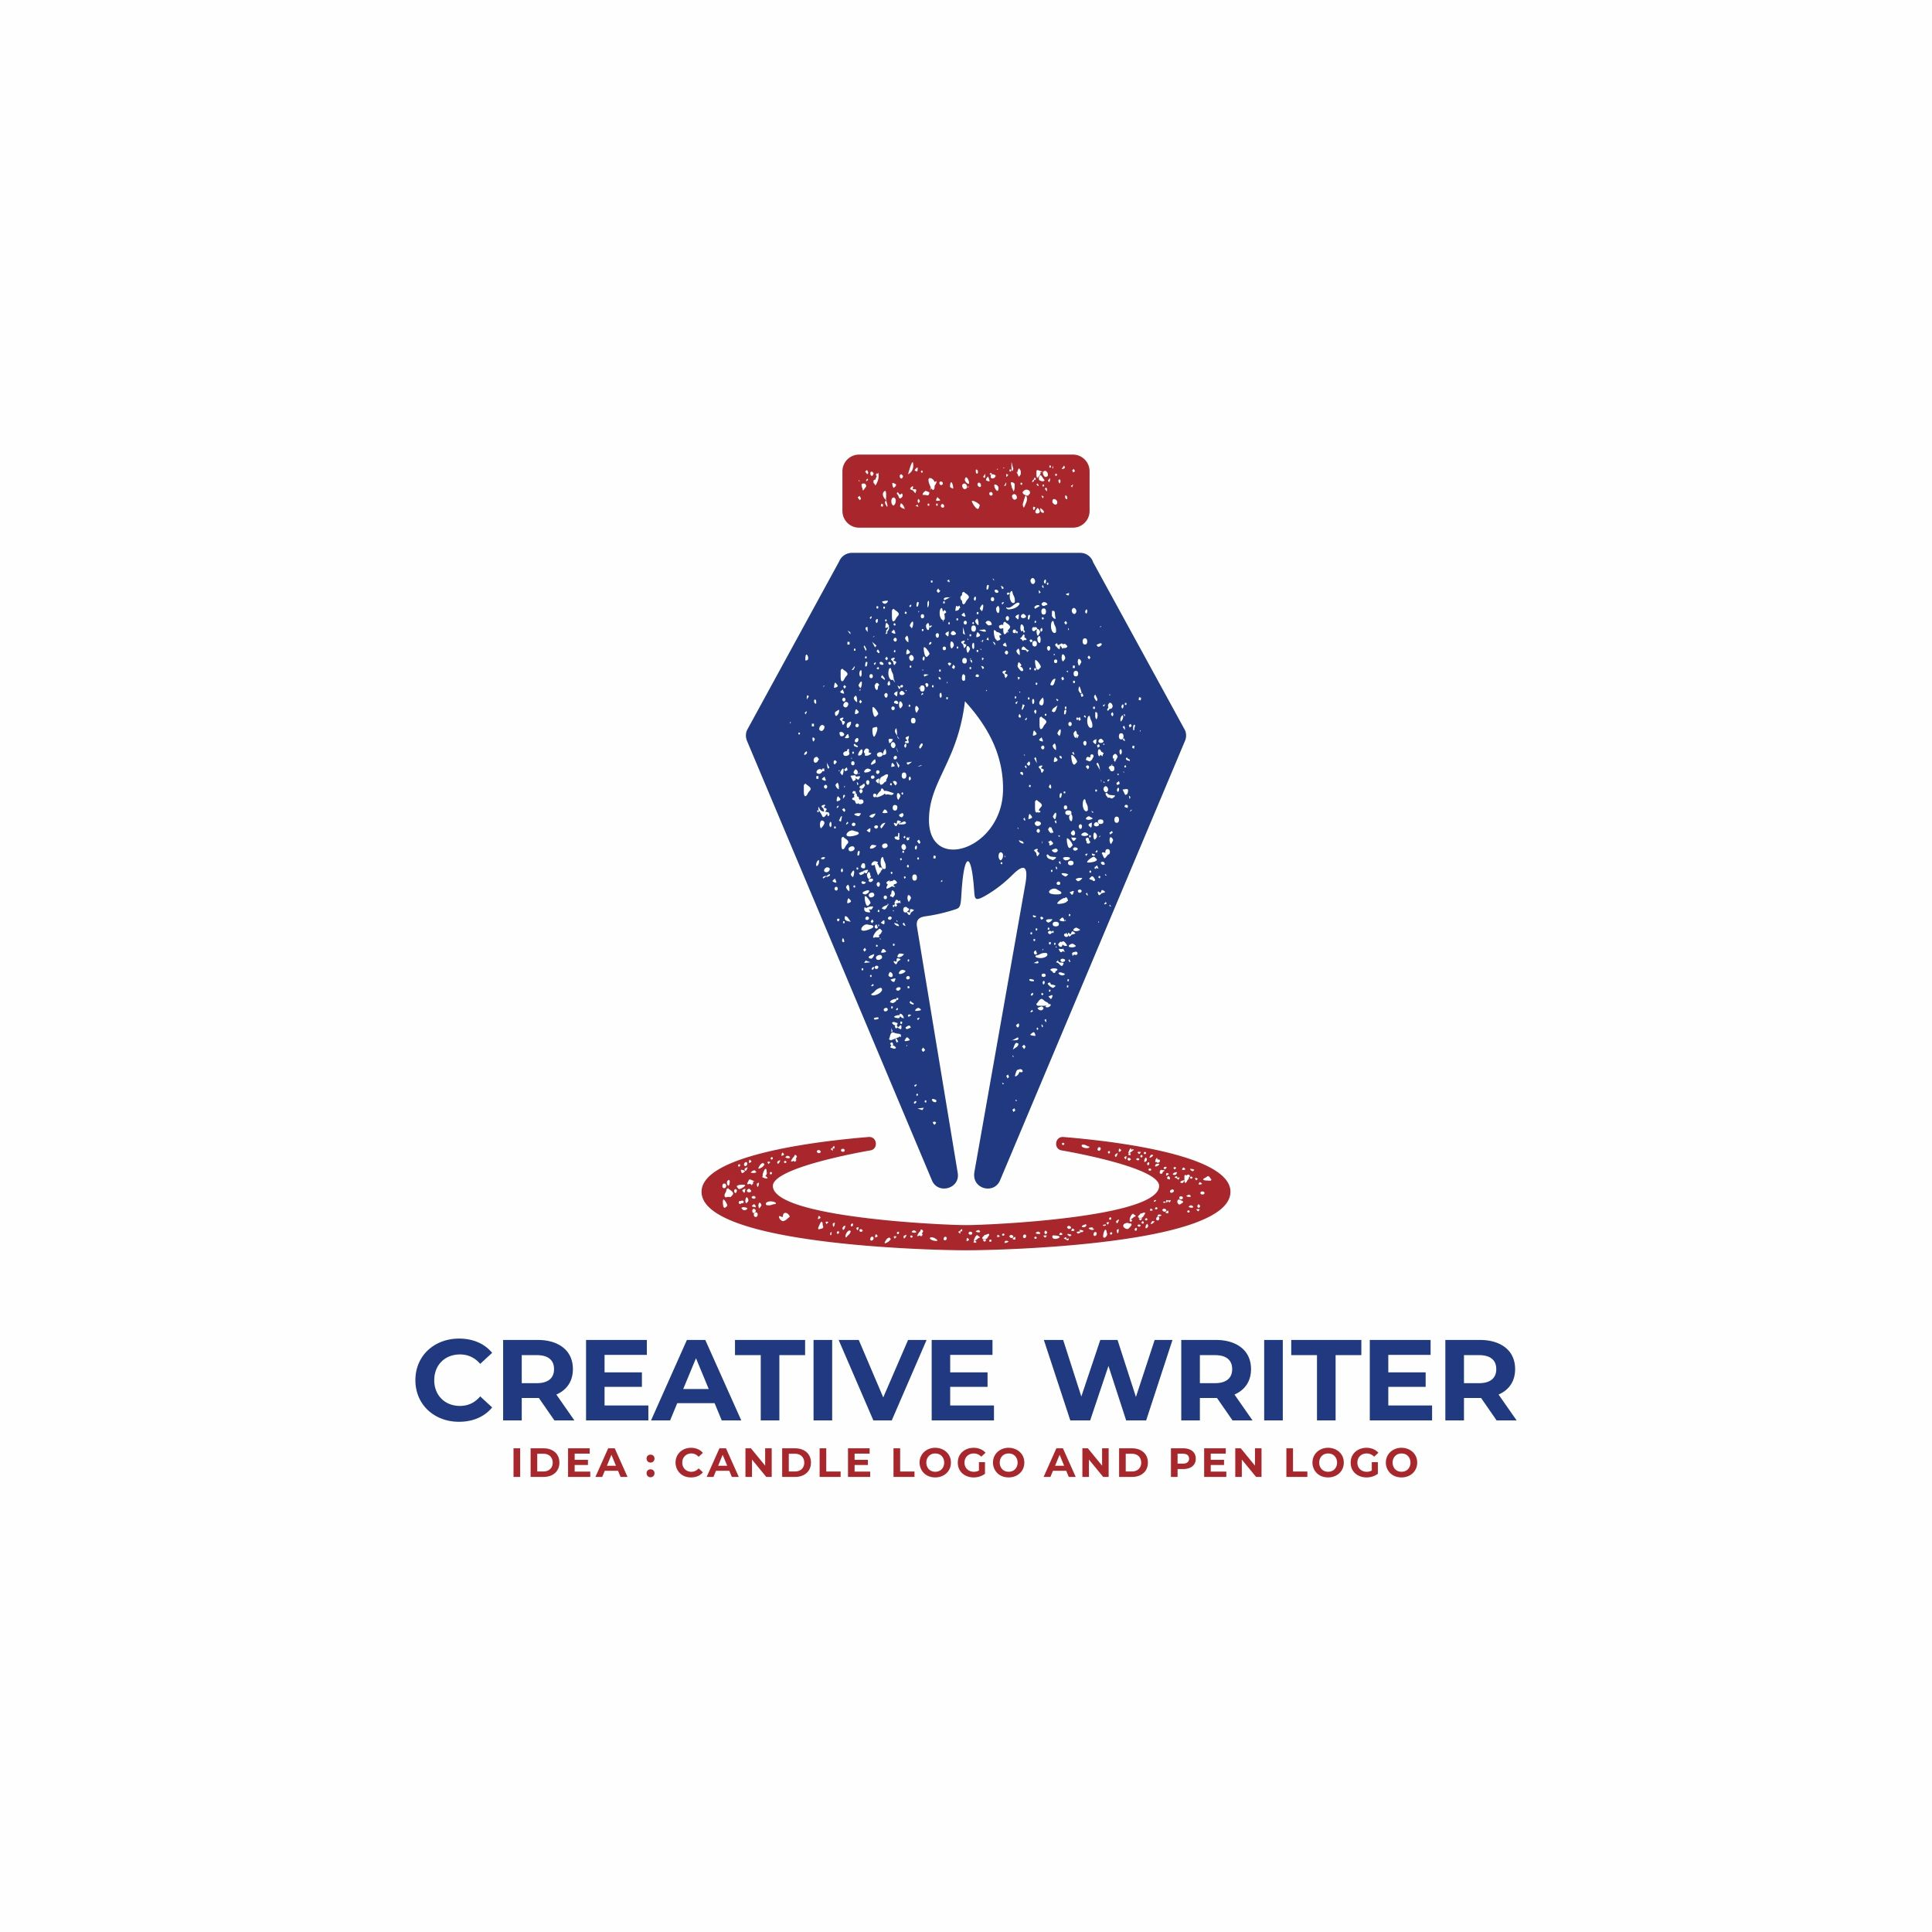 Creative writer logo. Pen and candle logo design can be